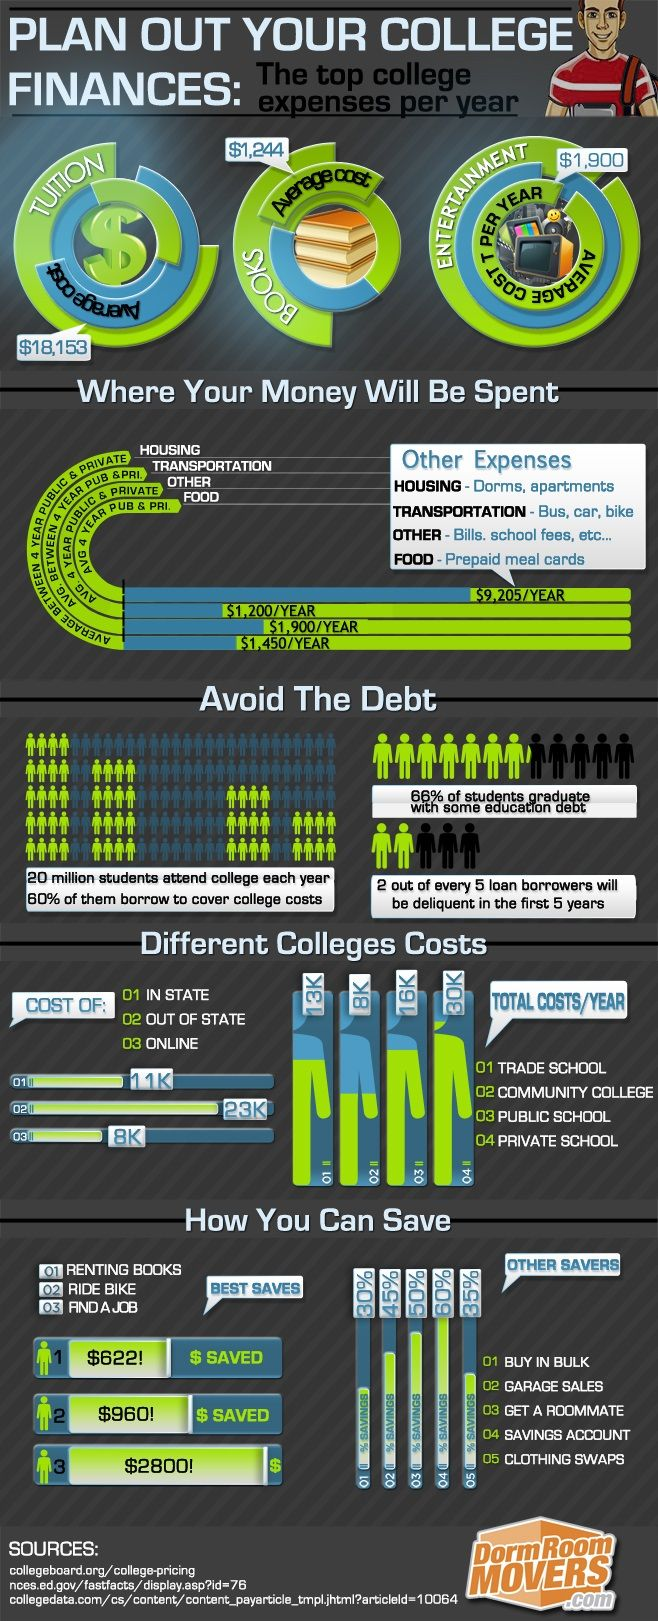 Plan out your college finances to avoid debt pitfalls.   college finance, college living, college, college costs, dormroommovers